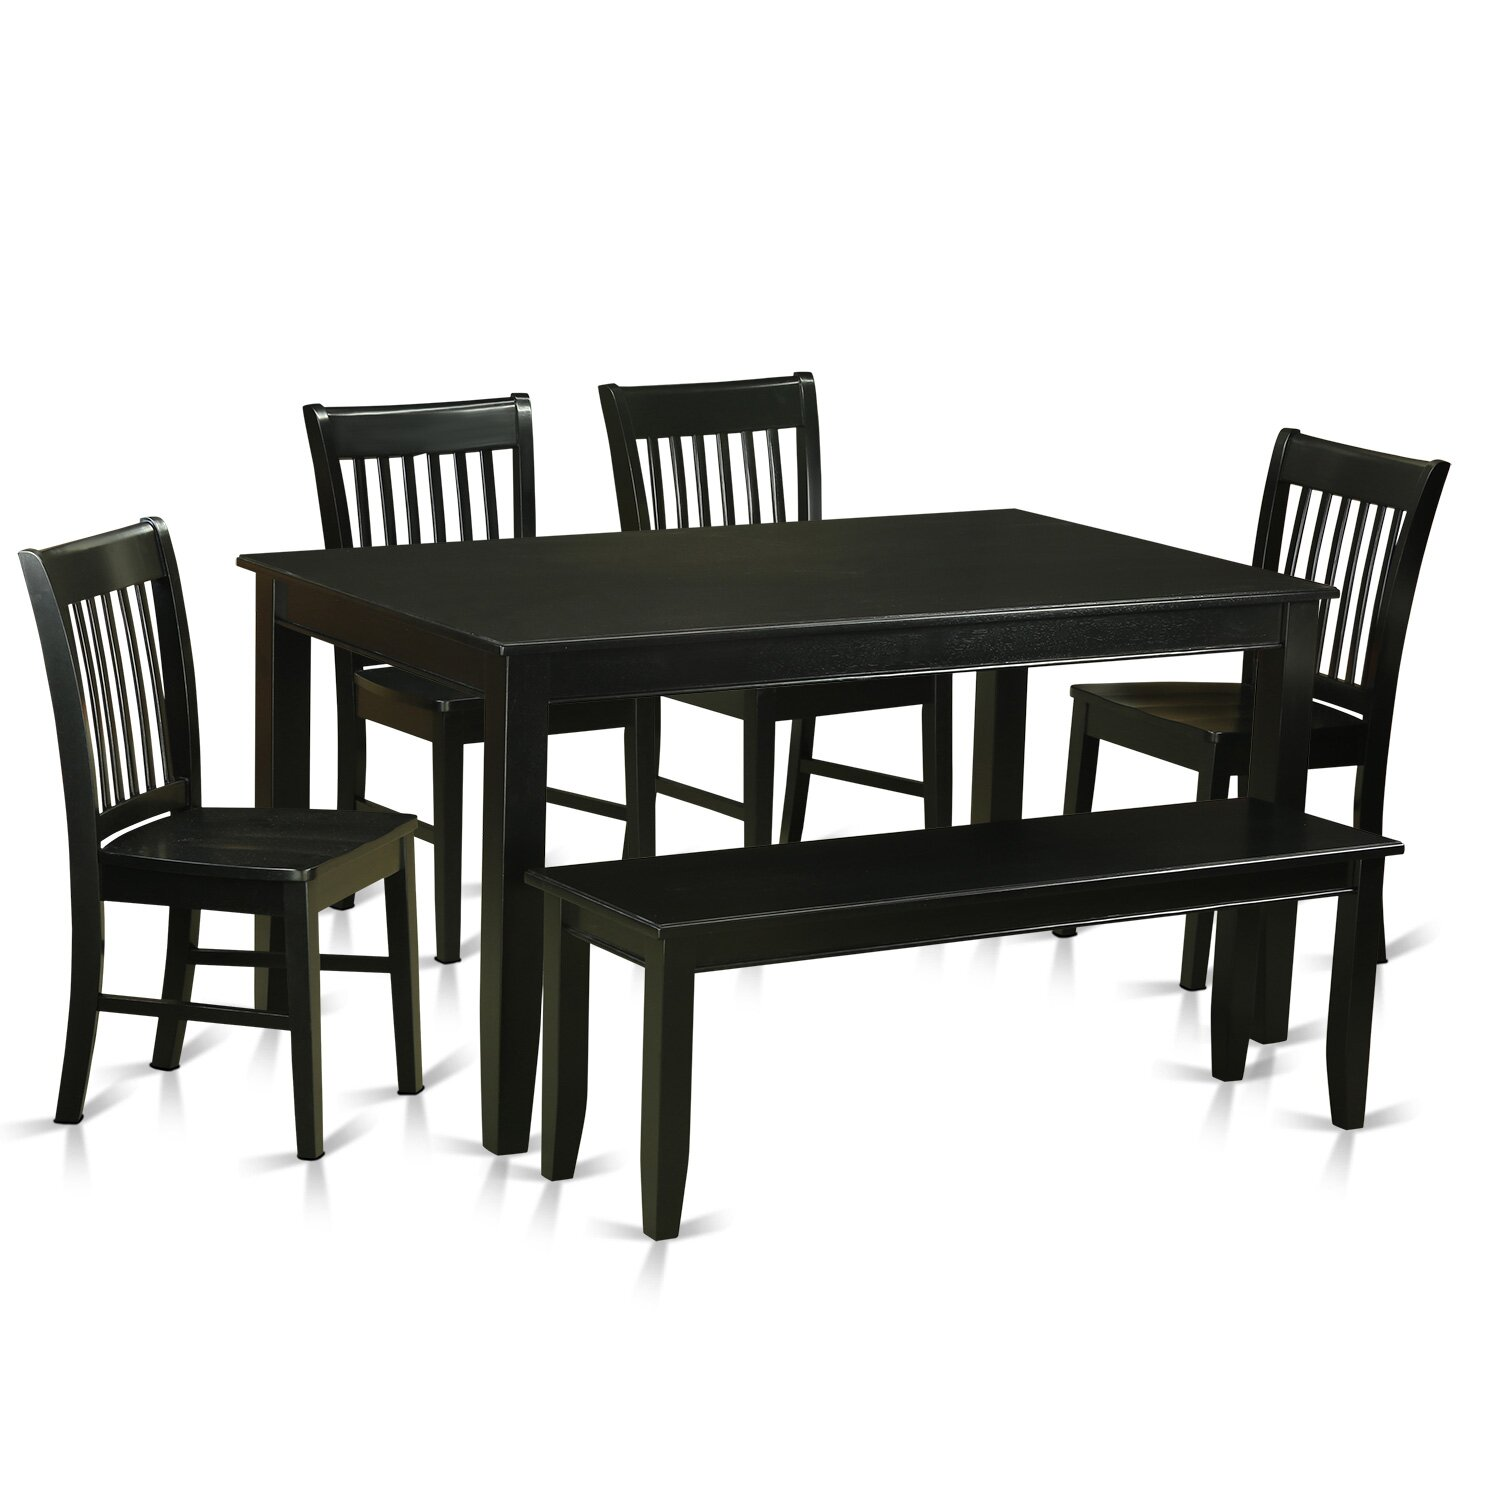 East west dudley 6 piece dining set wayfair for 4 piece dining table set